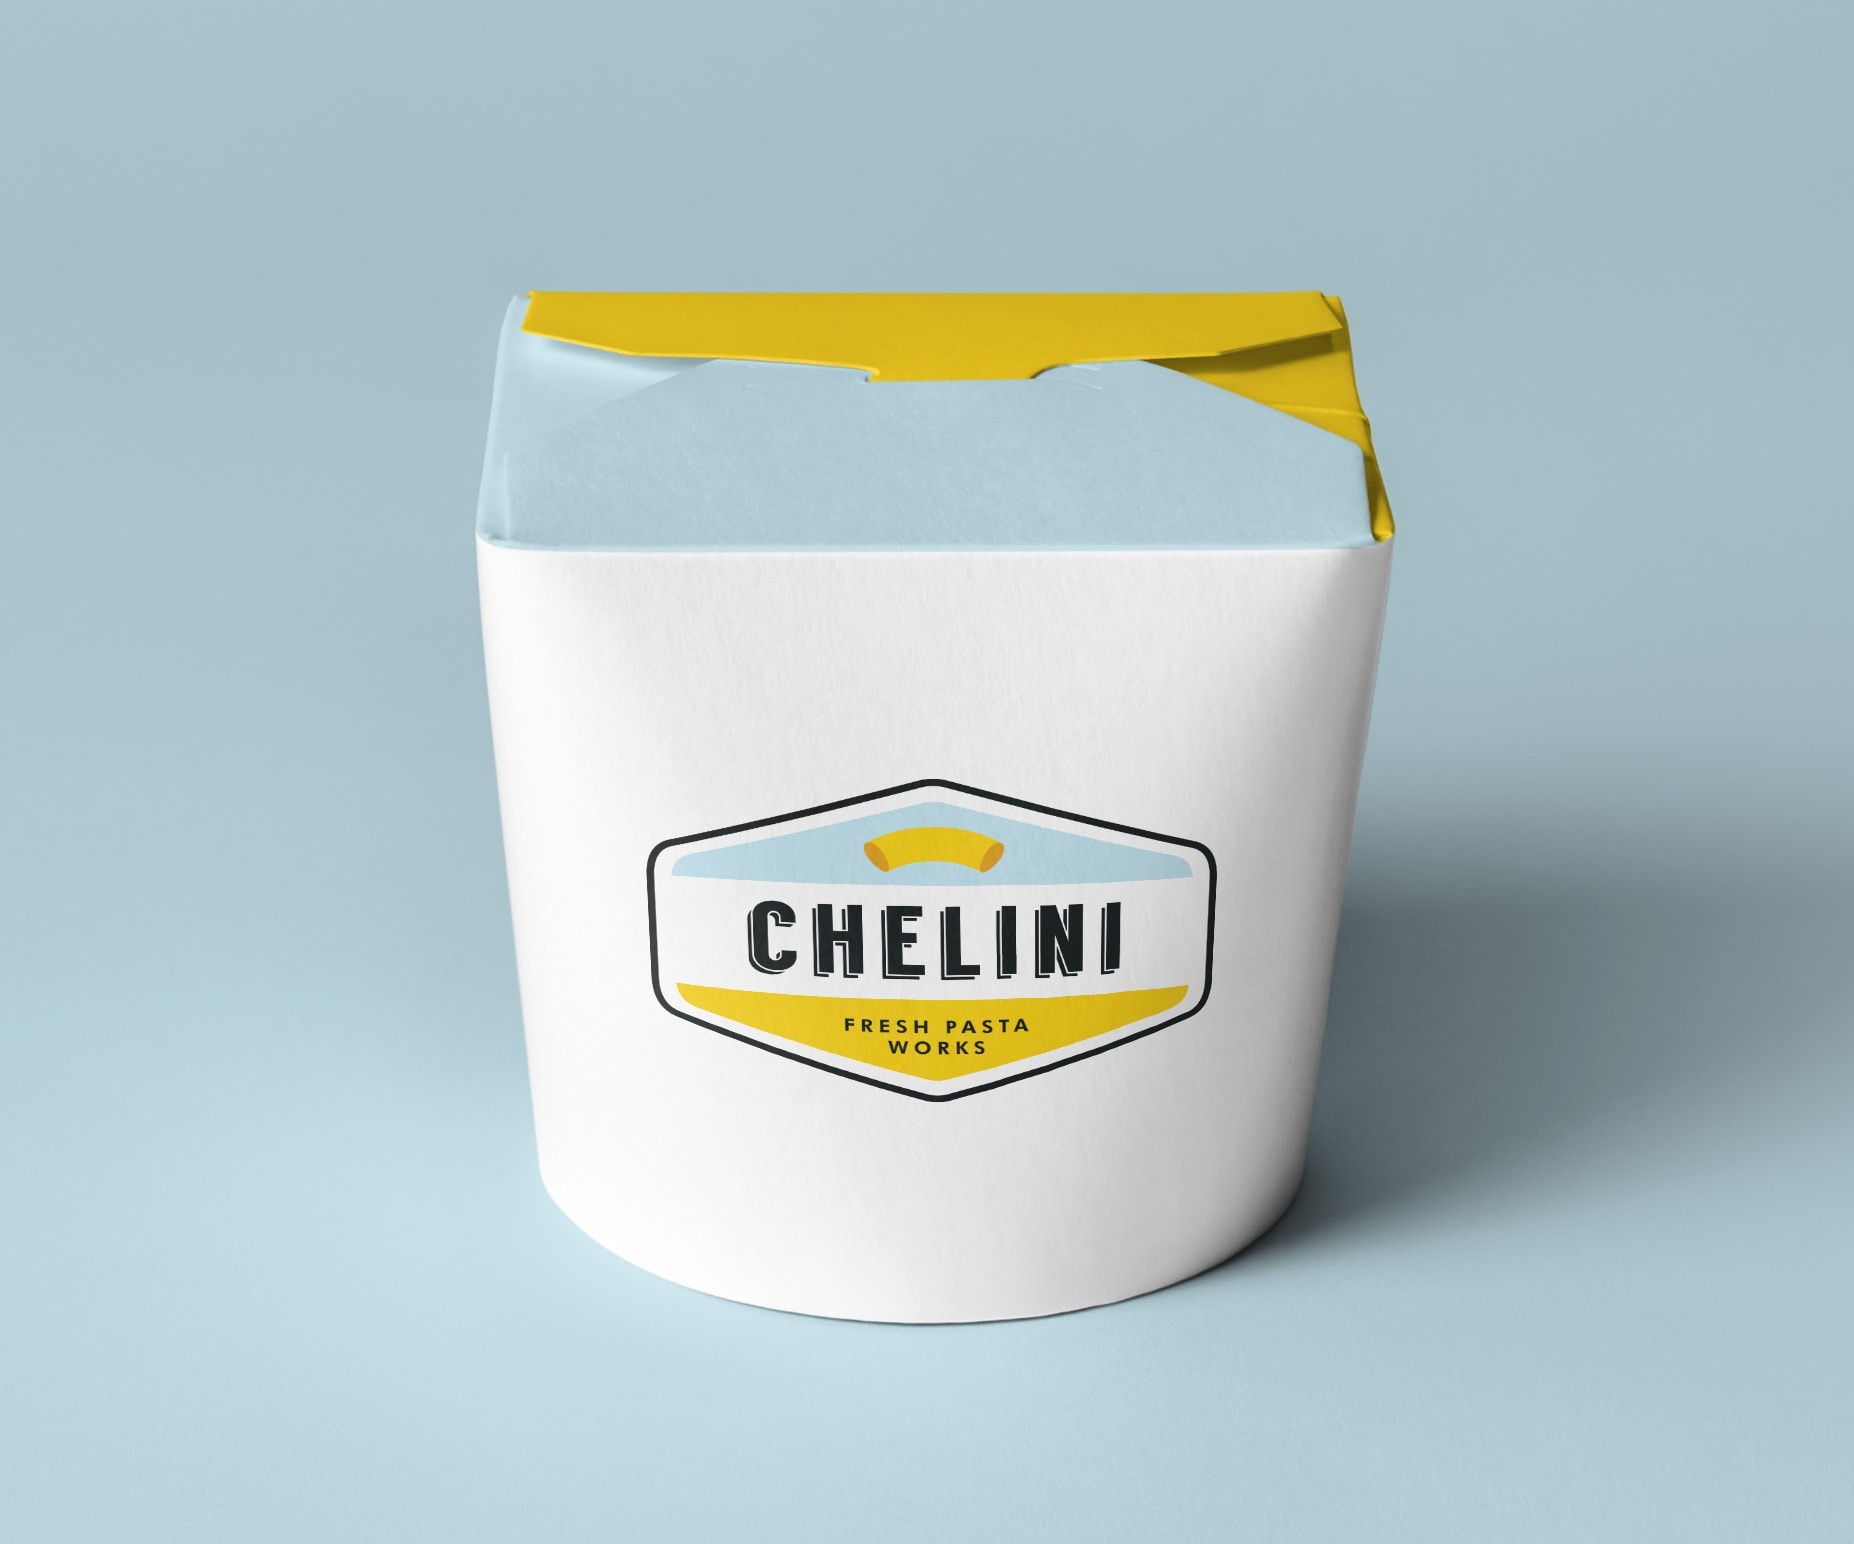 Chelini branded noodle box. © LET'S PANDA